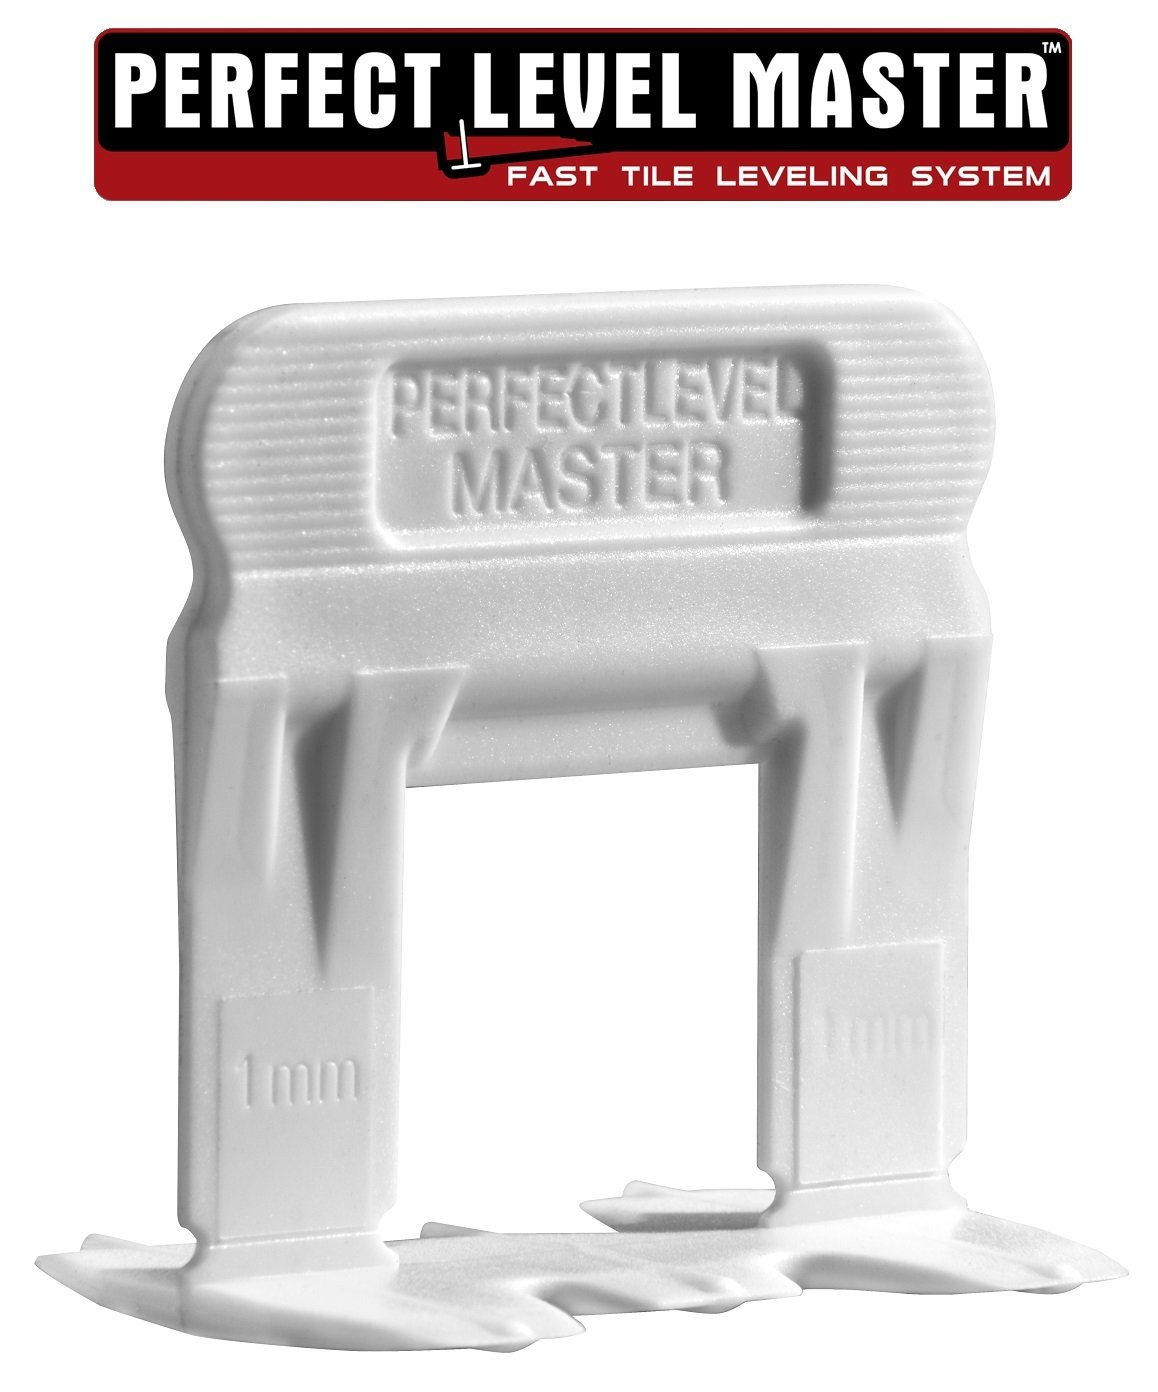 T-Lock ™ 1/32'' (1mm) 500 Clips '' PERFECT LEVEL MASTER ™ Professional '' Anti lippage '' Tile leveling system - (spacers only), Red wedges not included and sold separately!